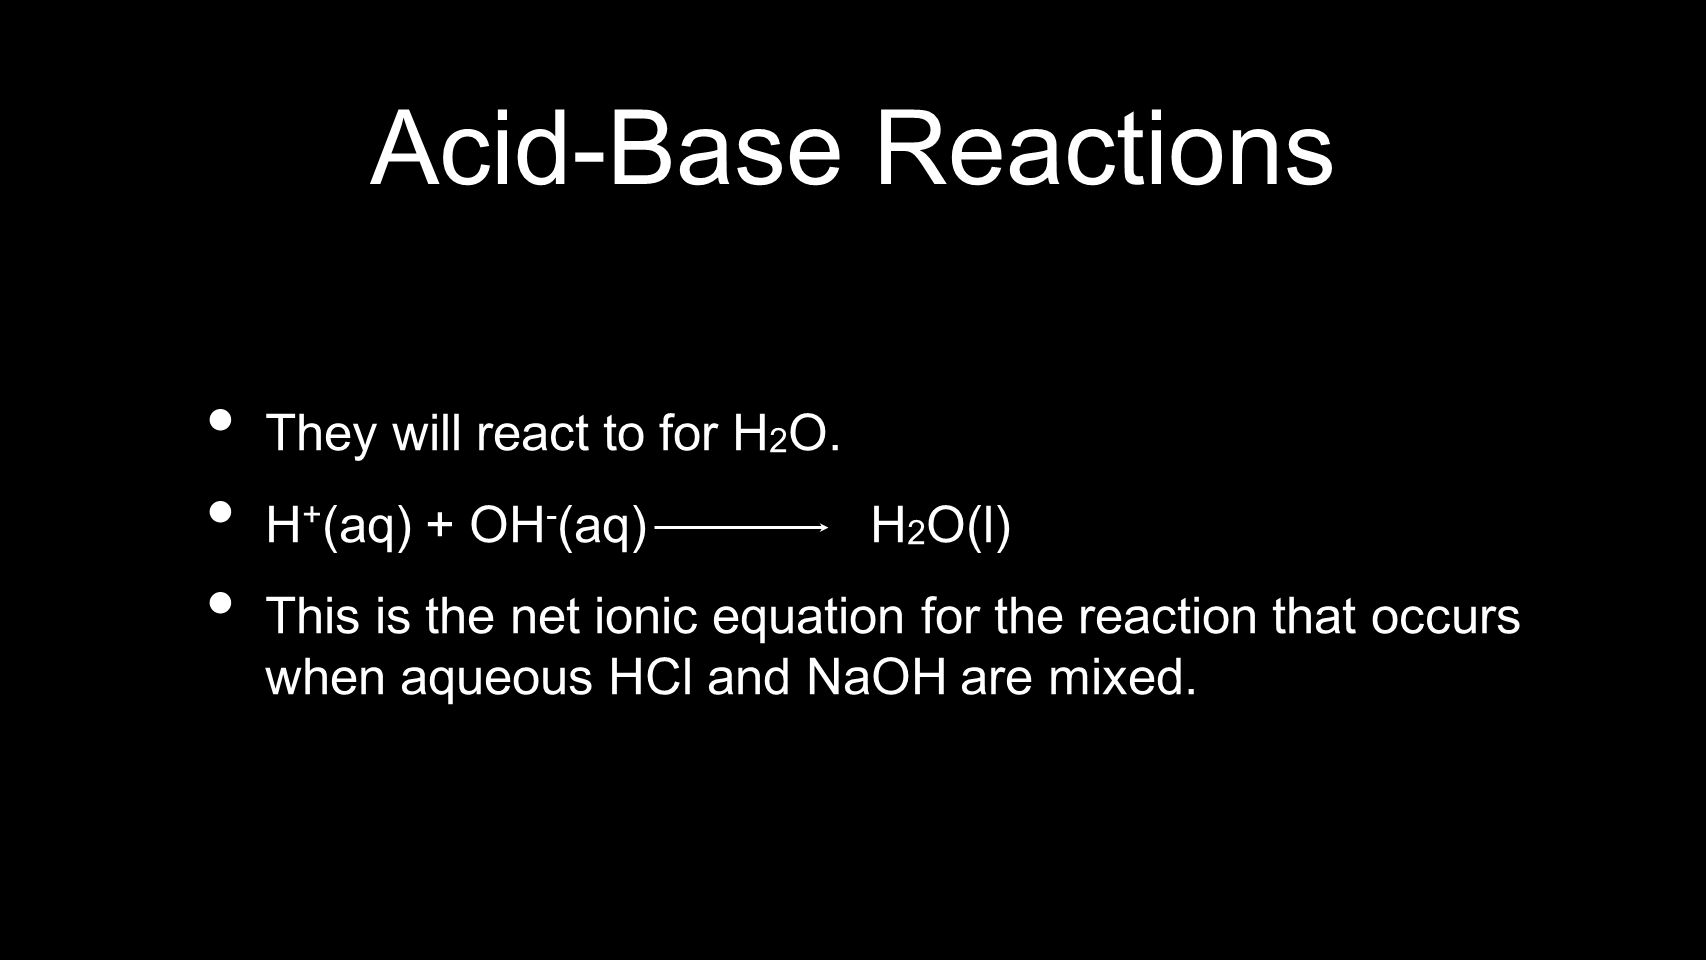 Acid-Base Reactions They will react to for H2O.